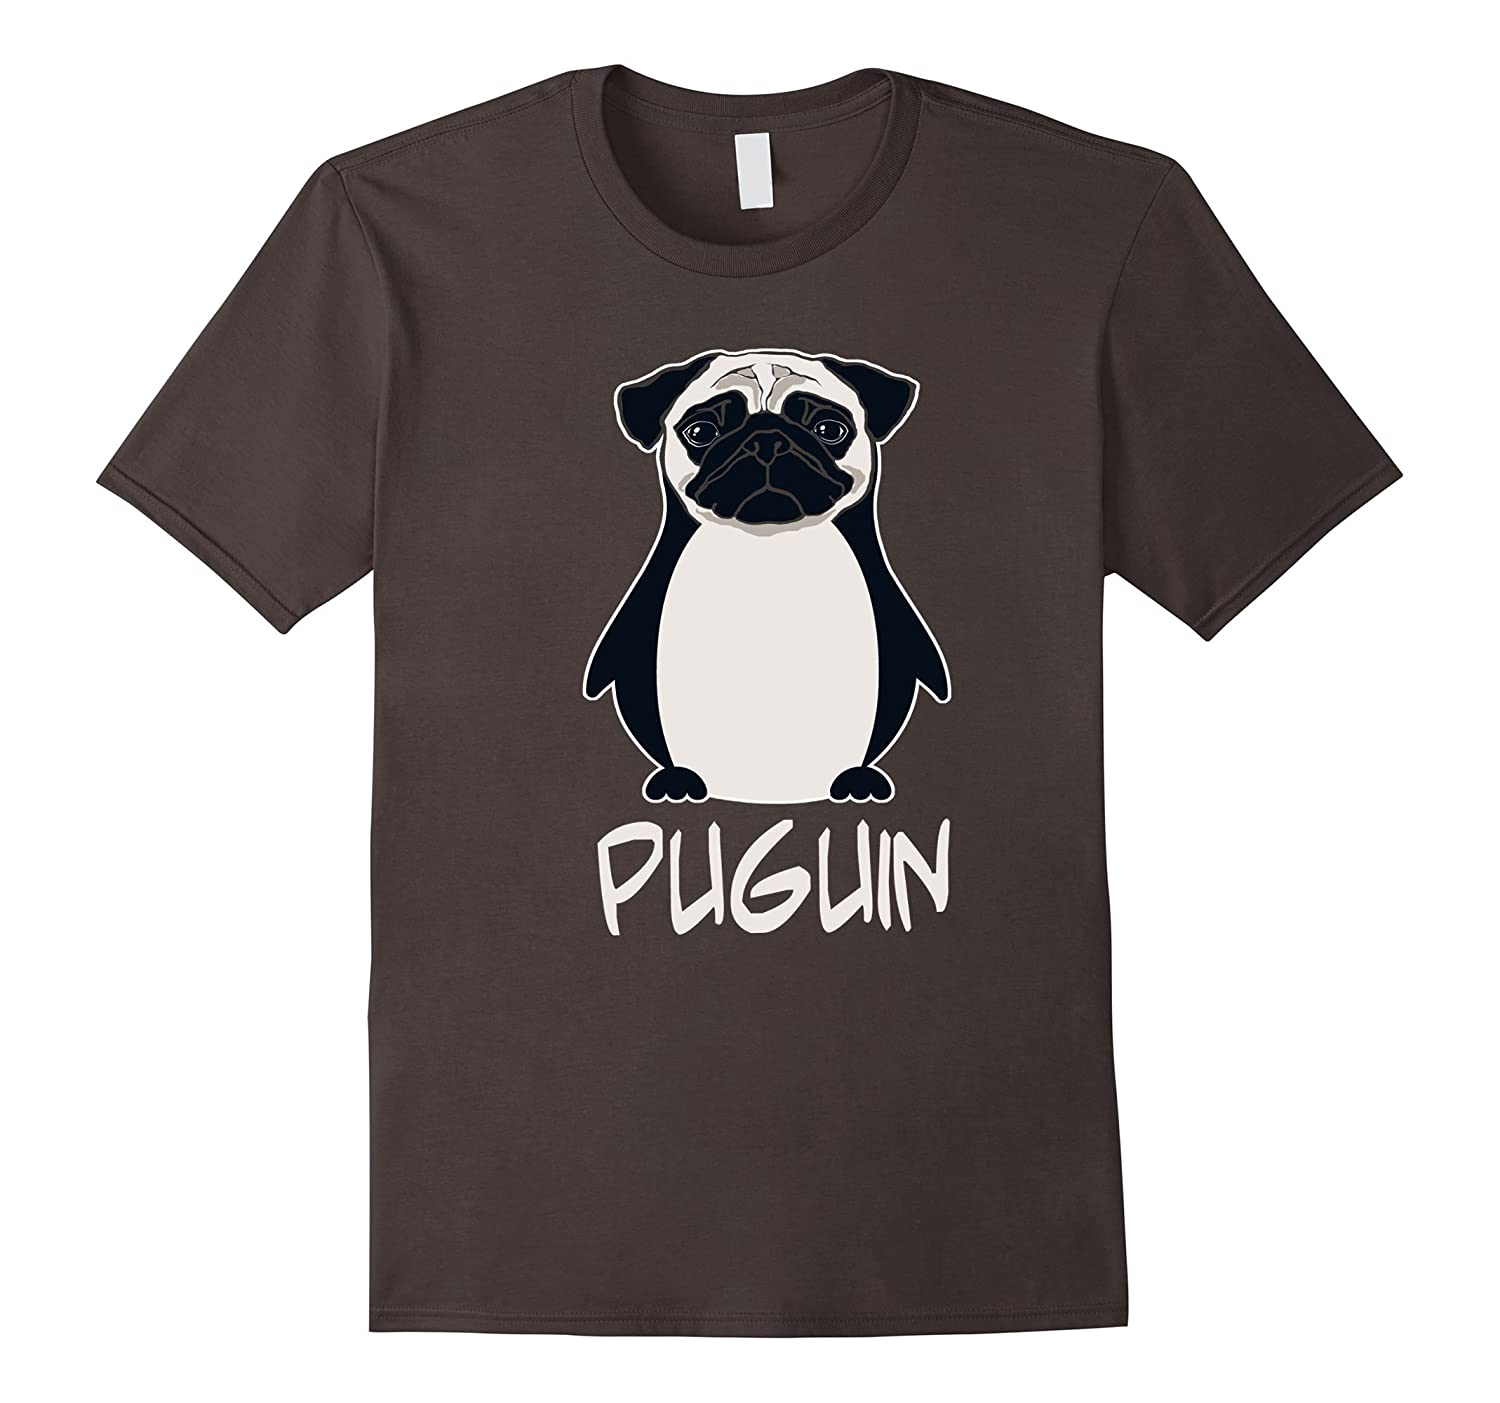 pug shirts for kids pug shirts for boys and kids funny puguin t shirt cl 7726